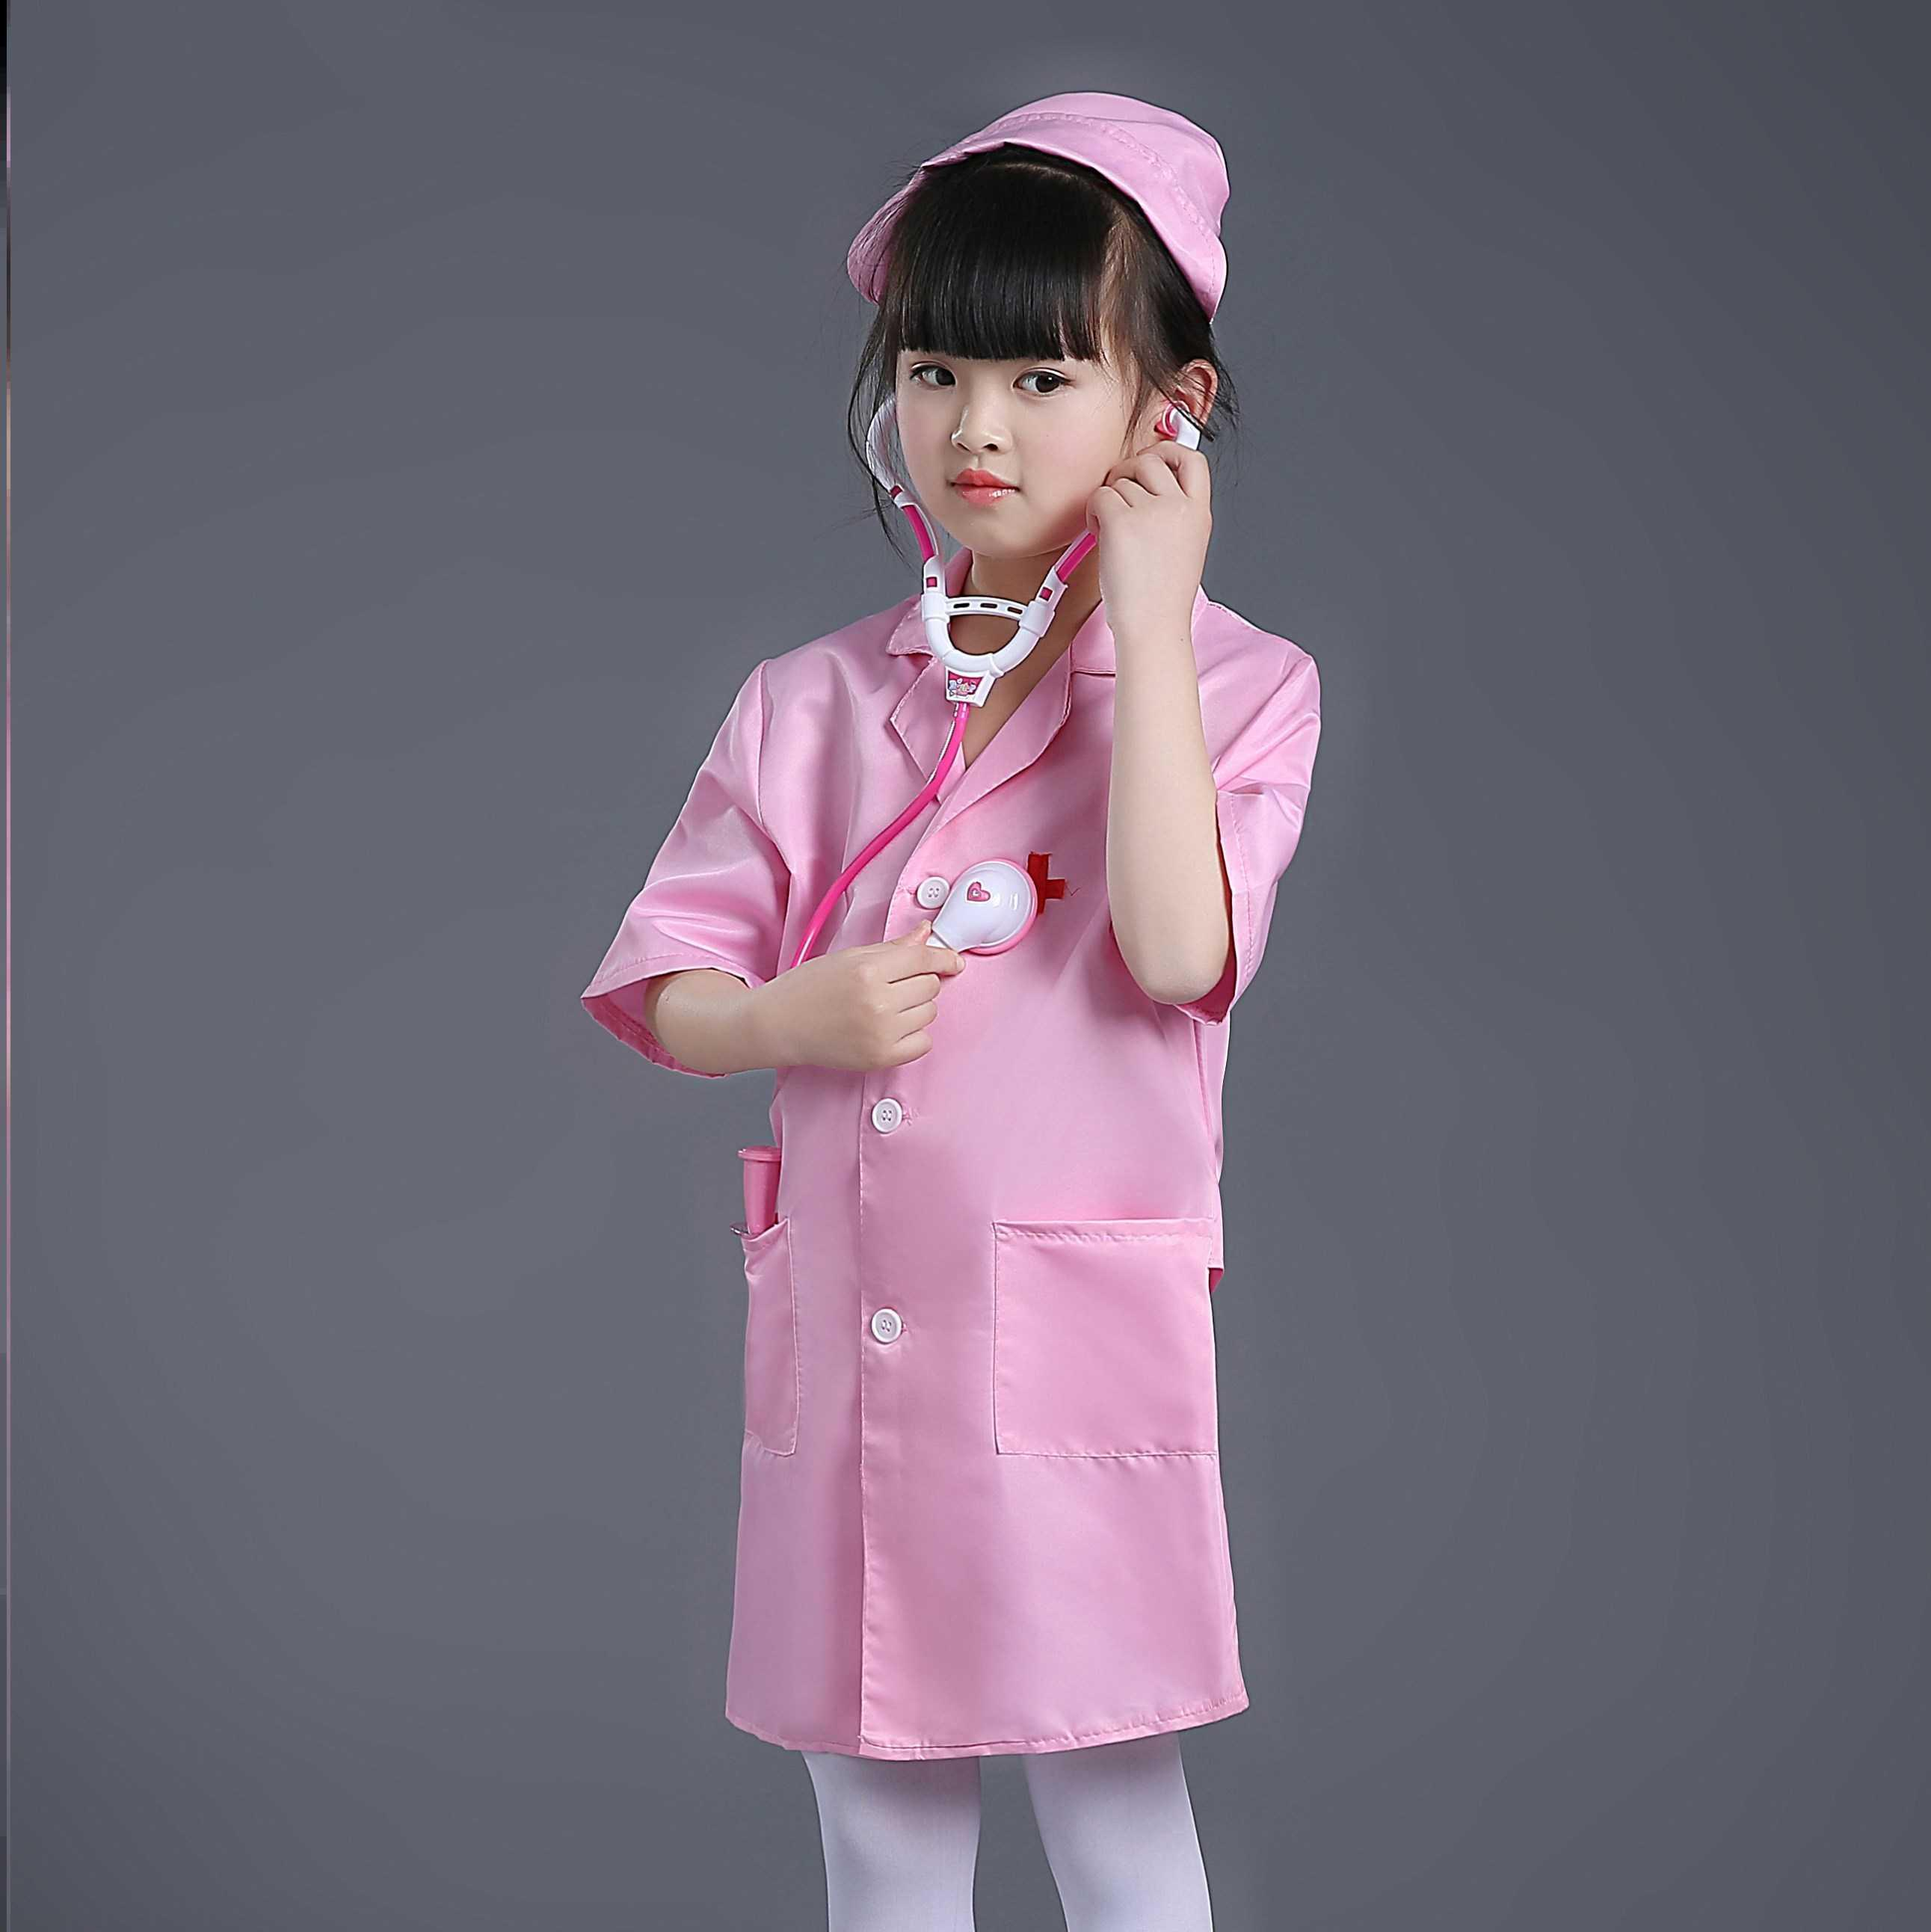 Childrens role play clothing loo doctors clothing childrens activities